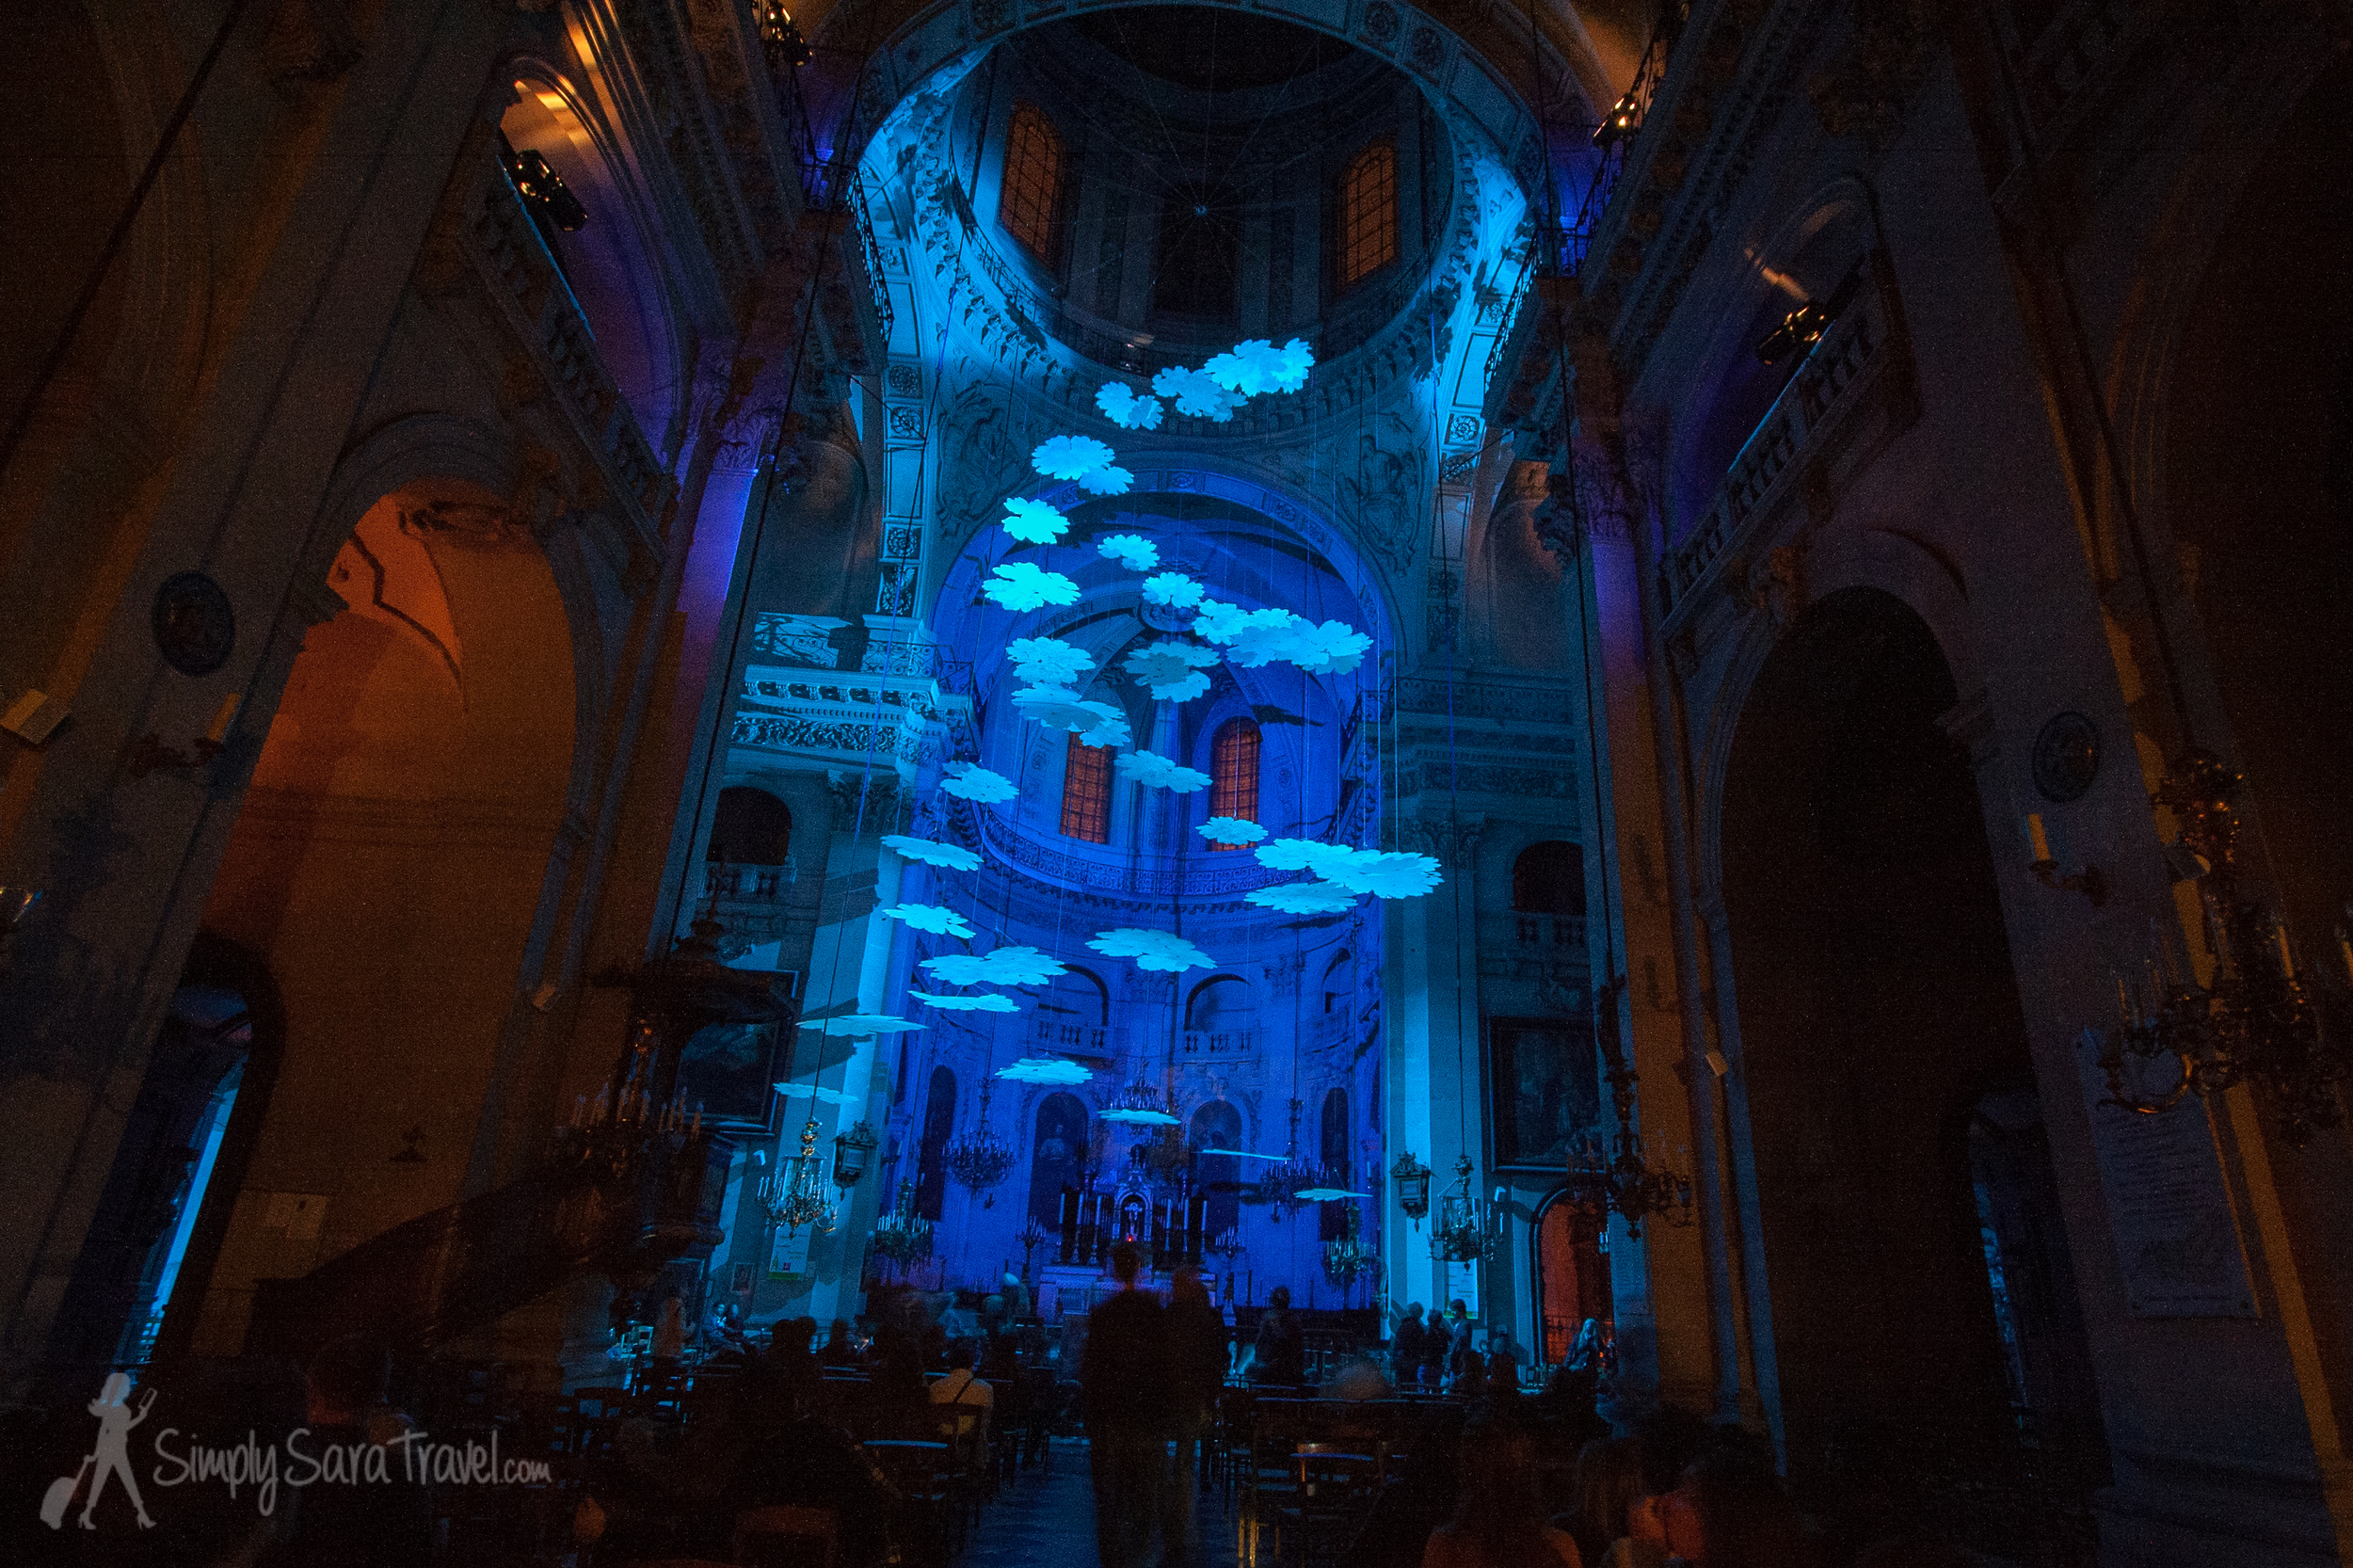 """The artistDominique Lacloche's work in St. Paul, called """"un degré plus haut"""" (a higher level). It was a huge mobile suspended from the church's dome."""